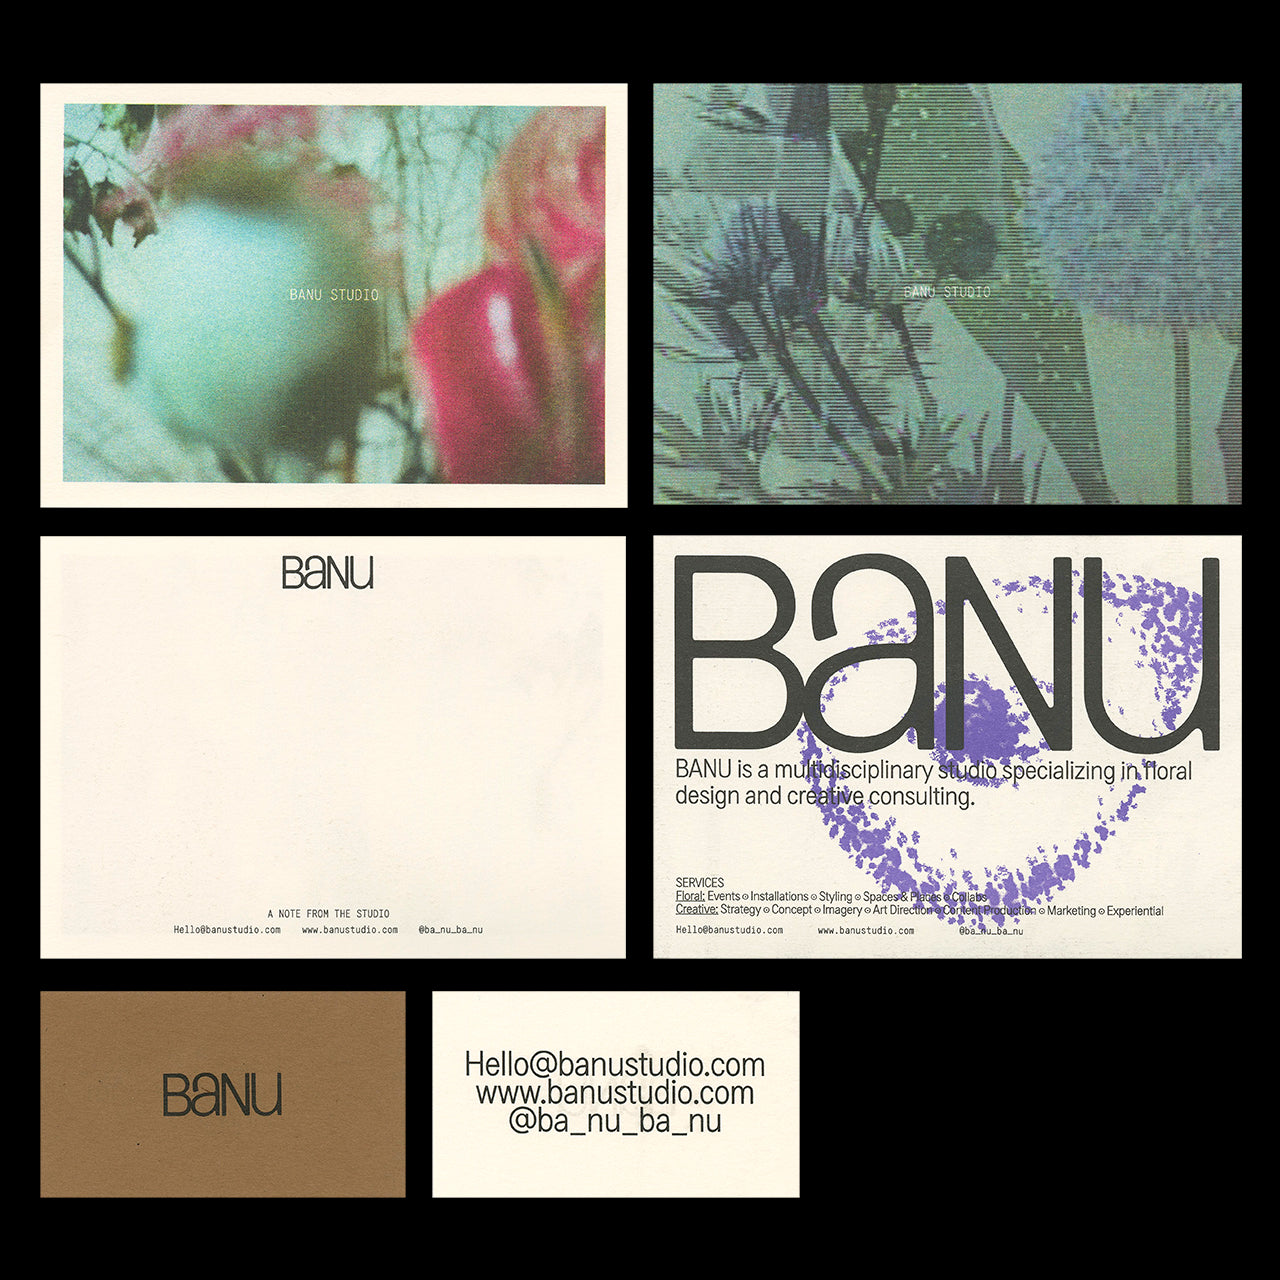 Promo cards, notecards, and business cards for Banu Studio featuring blurry artistic photography of flowers